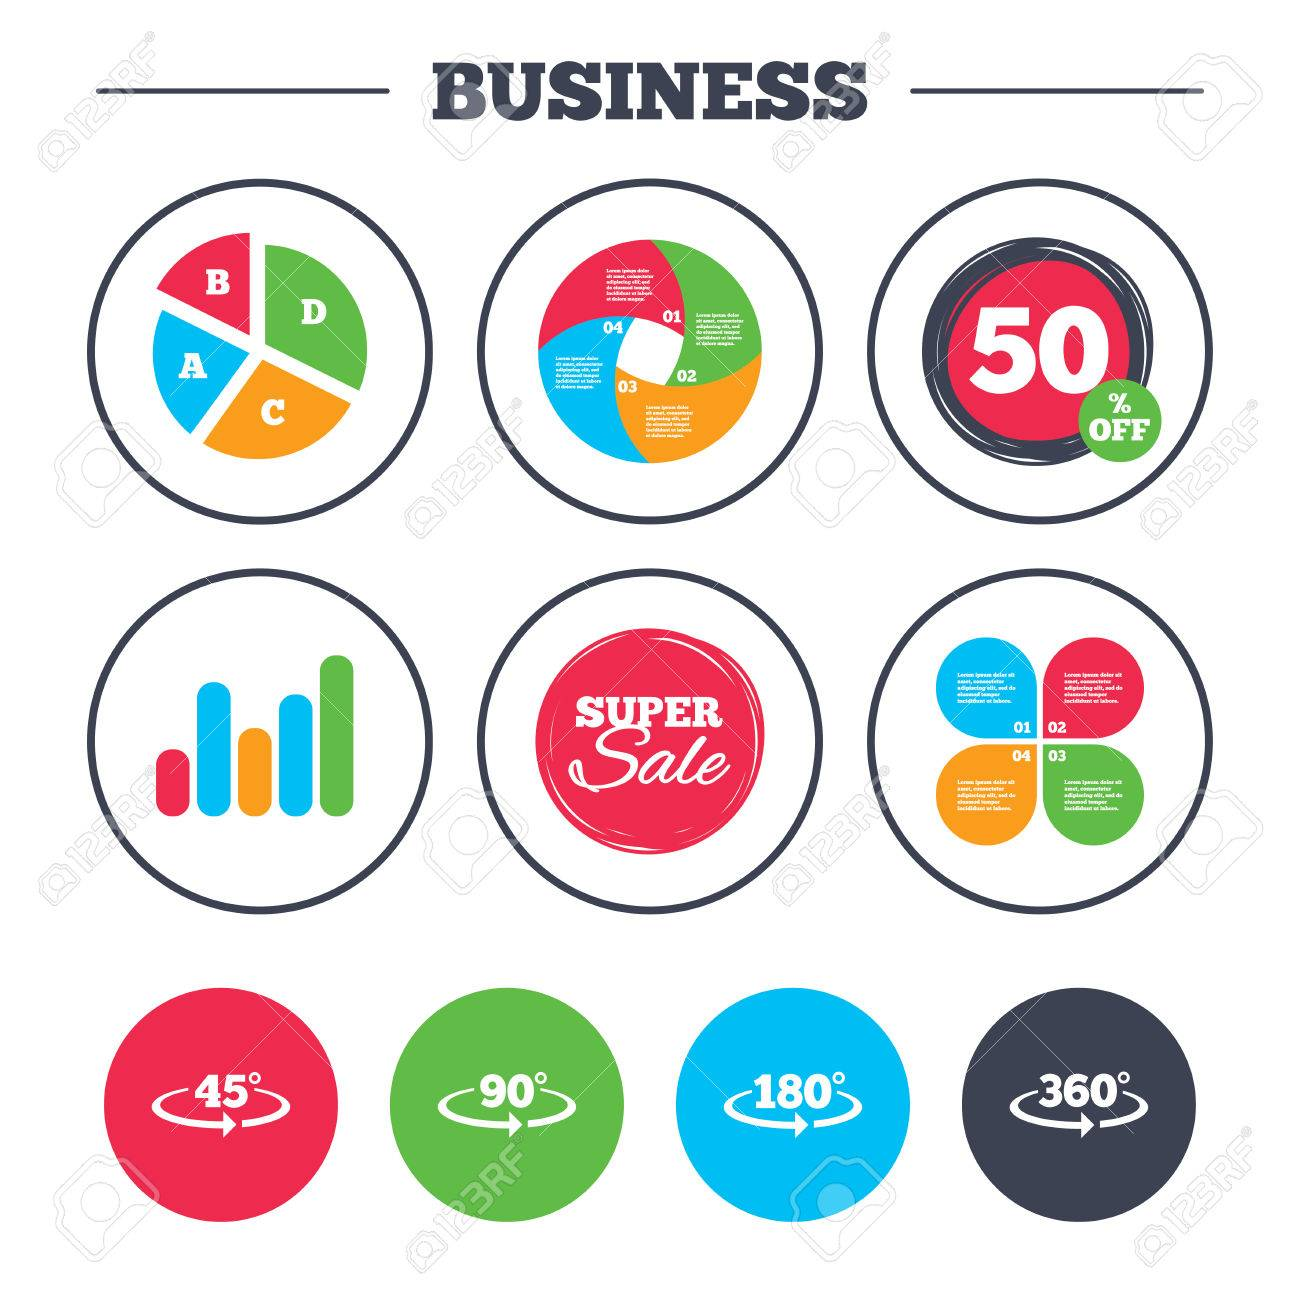 Business pie chart growth graph angle 45 360 degrees icons business pie chart growth graph angle 45 360 degrees icons geometry math geenschuldenfo Image collections